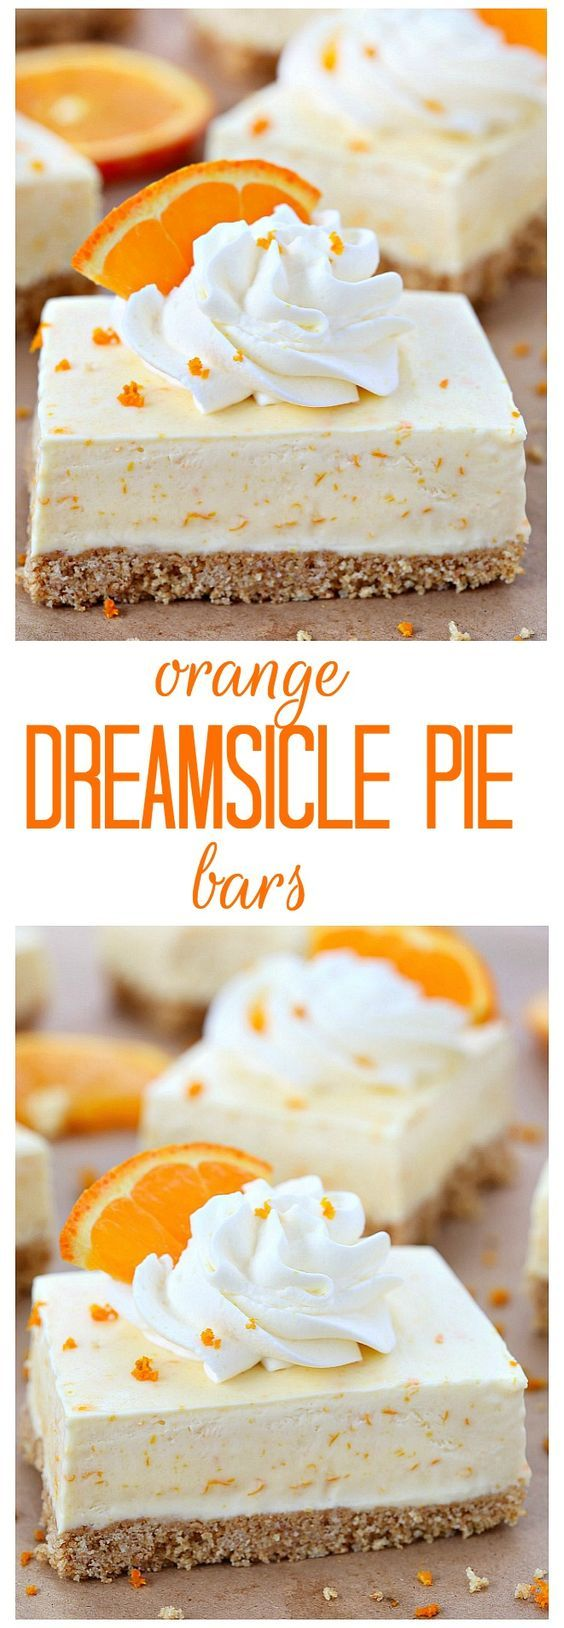 Summer in a bite, these orange dreamsicle pie bars are packed with orange flavor from freshly squeezed orange juice and grated orange rind! Forget the orange flavored jello, these orange dreamsicle pie bars taste so much better!: